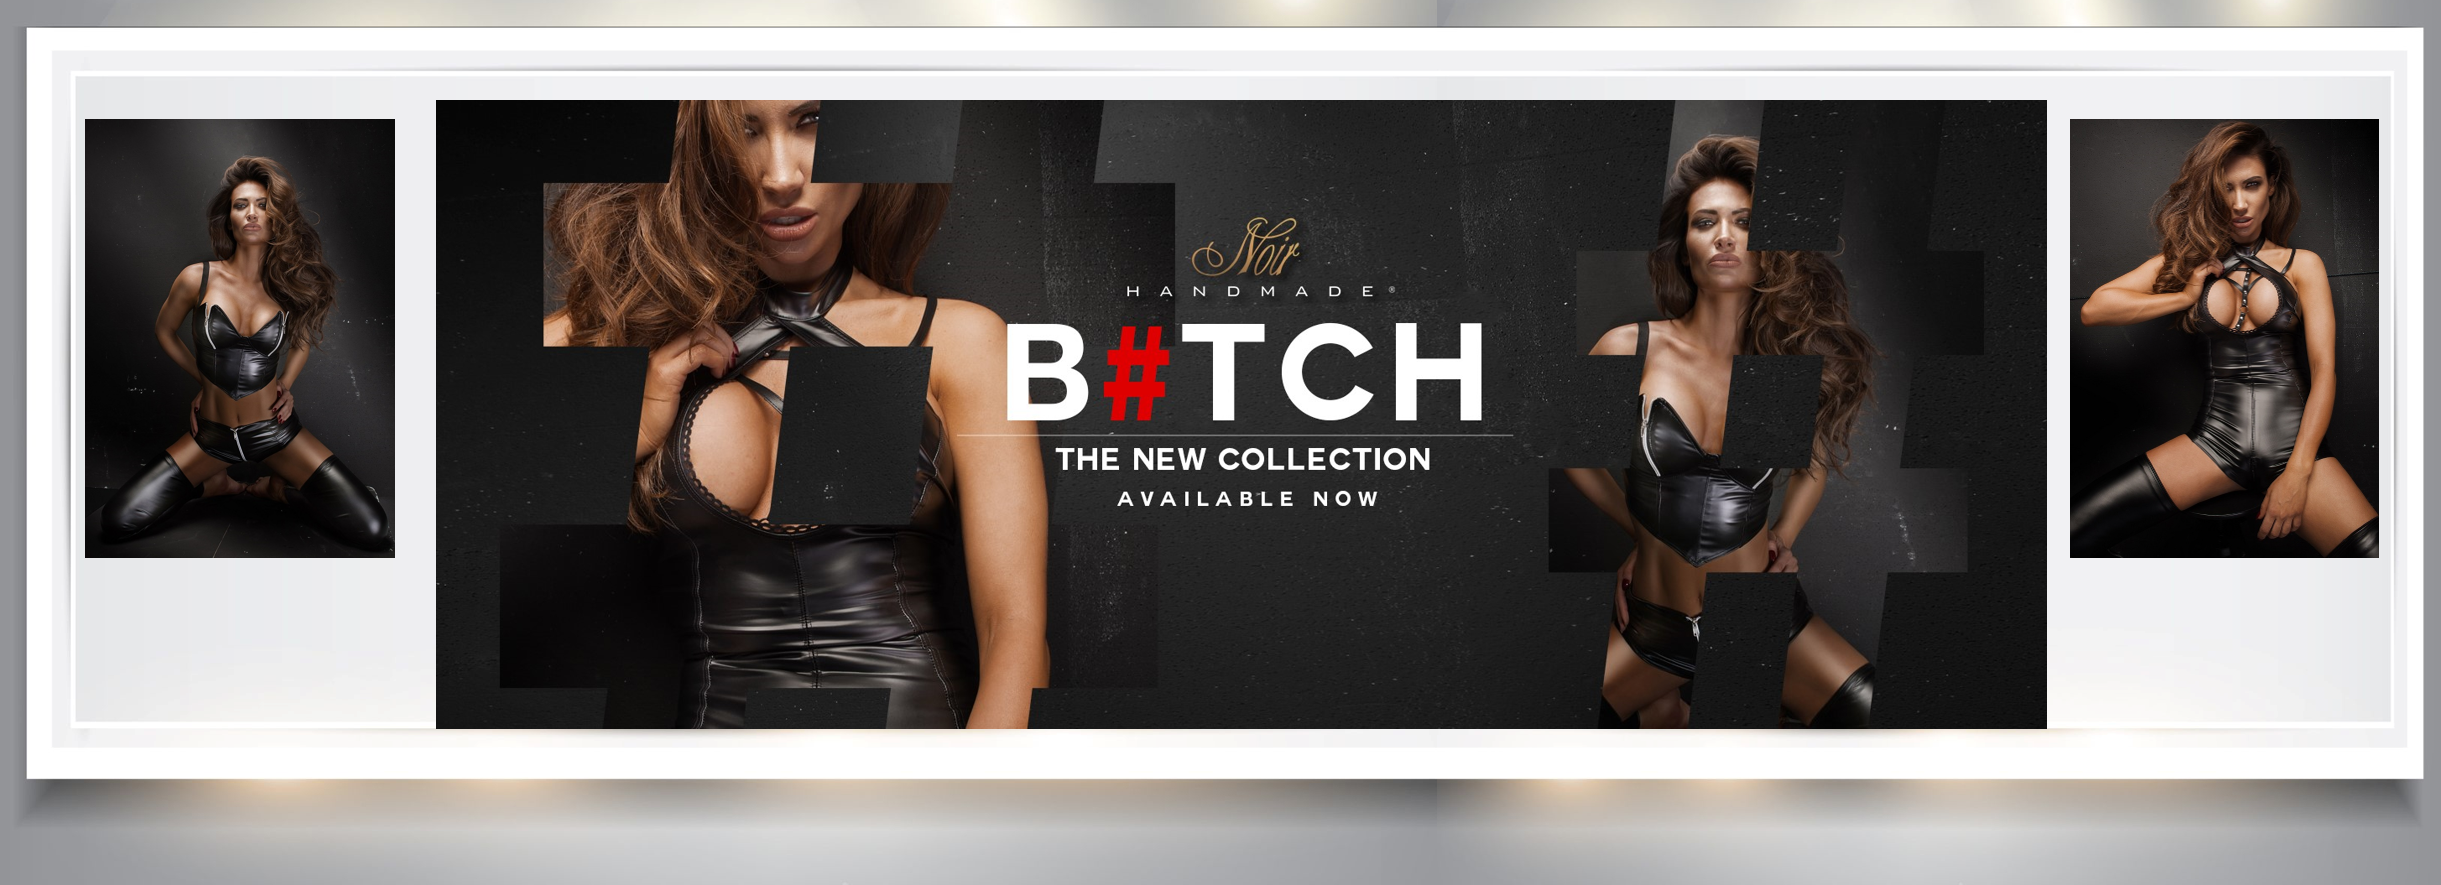 "Noir Handmade New Collection ""Bitch"""